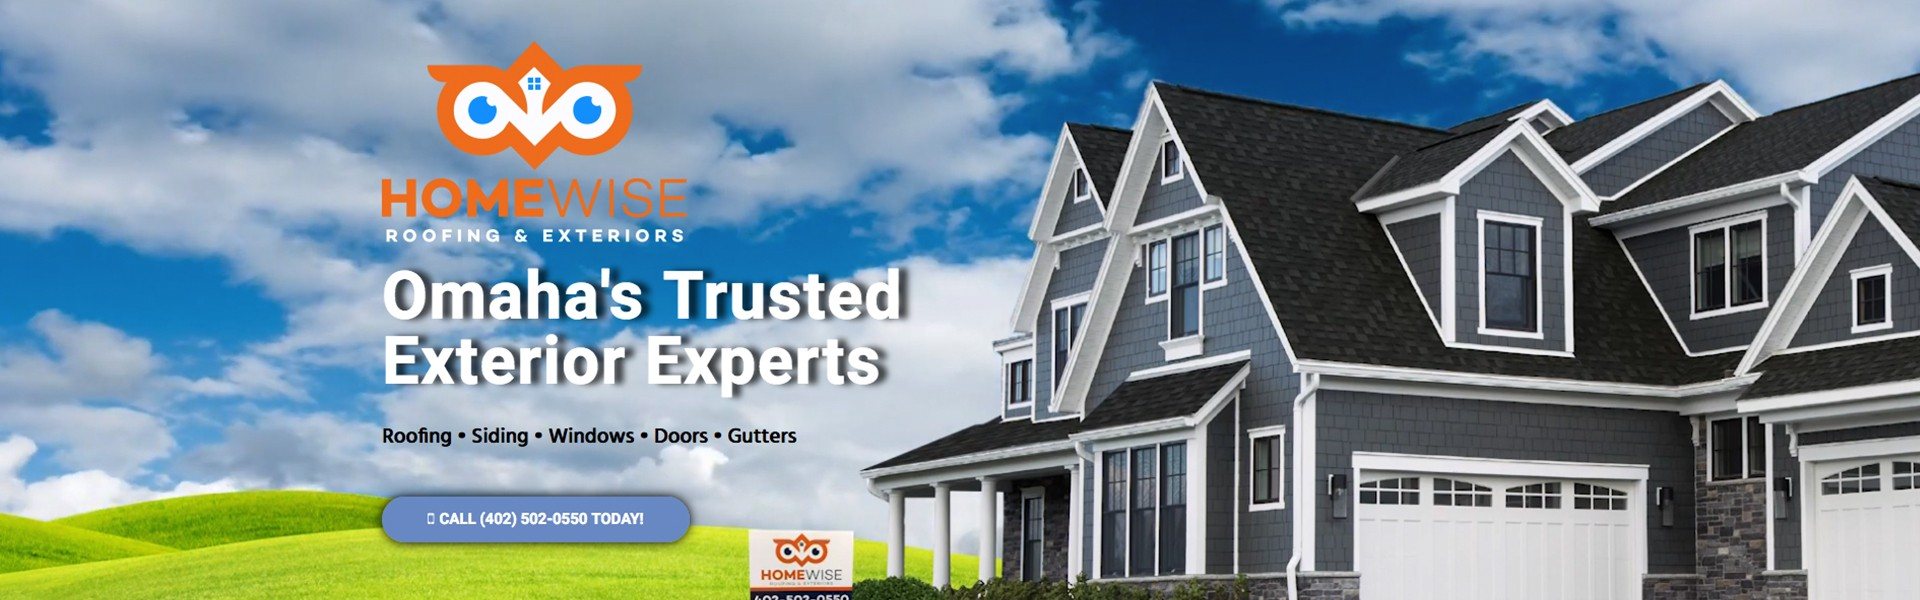 HomeWise Roofing & Exteriors